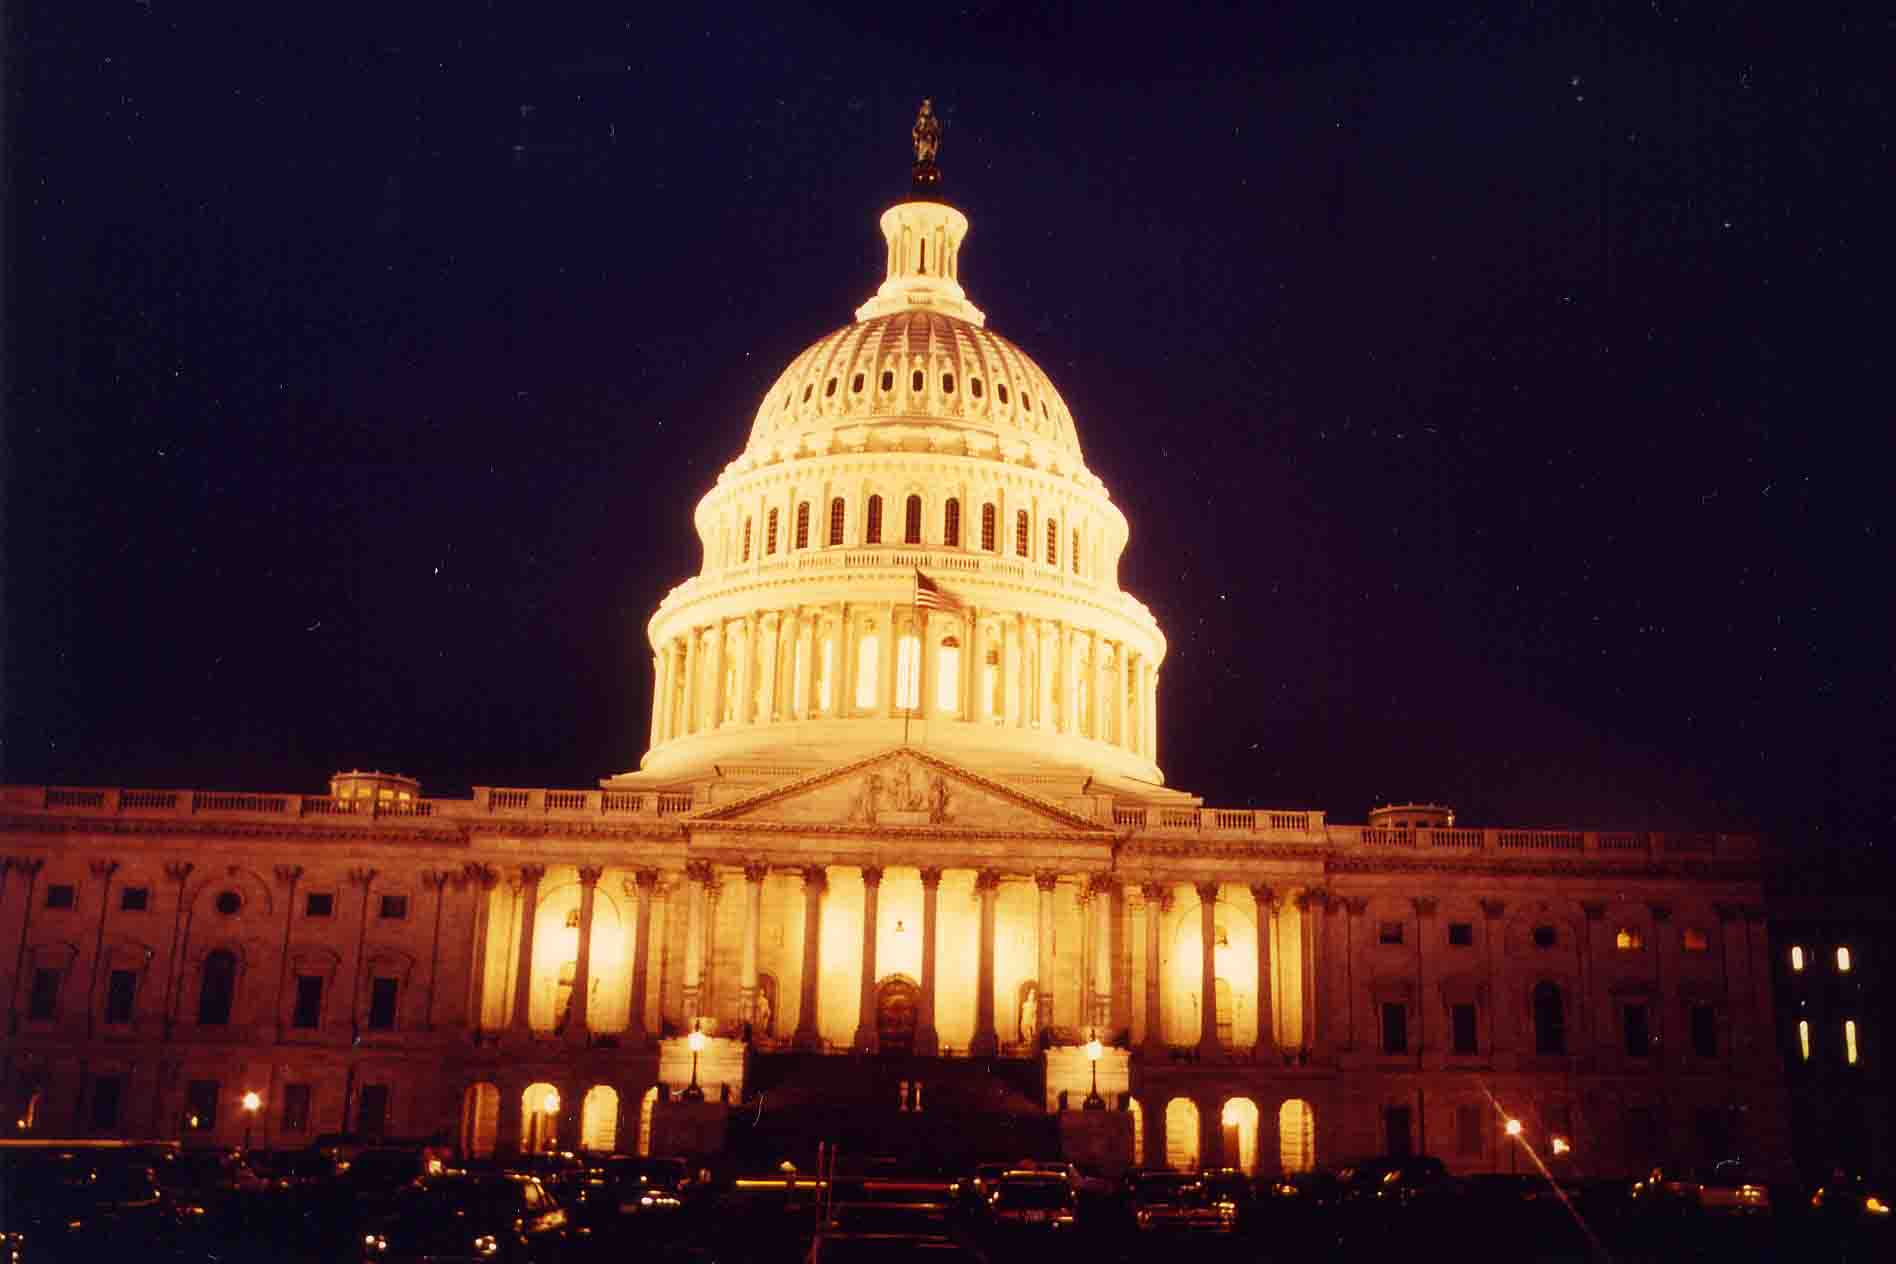 Capitol in Washington DC by night